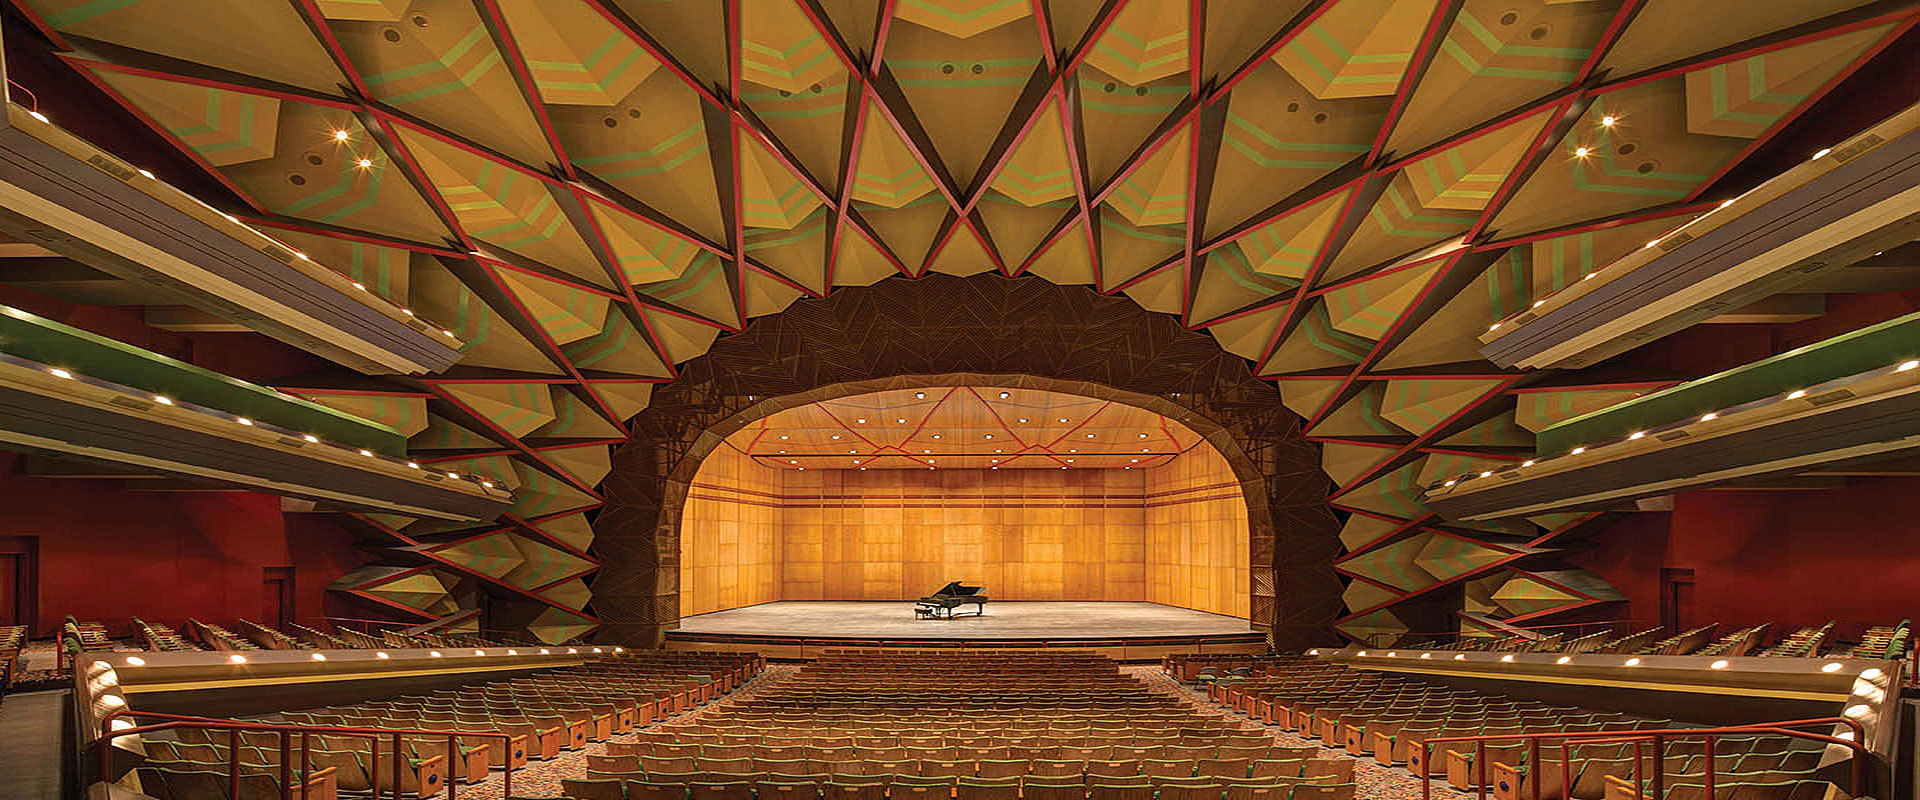 Atwood Concert Hall, Alaska Center for the Performing Arts